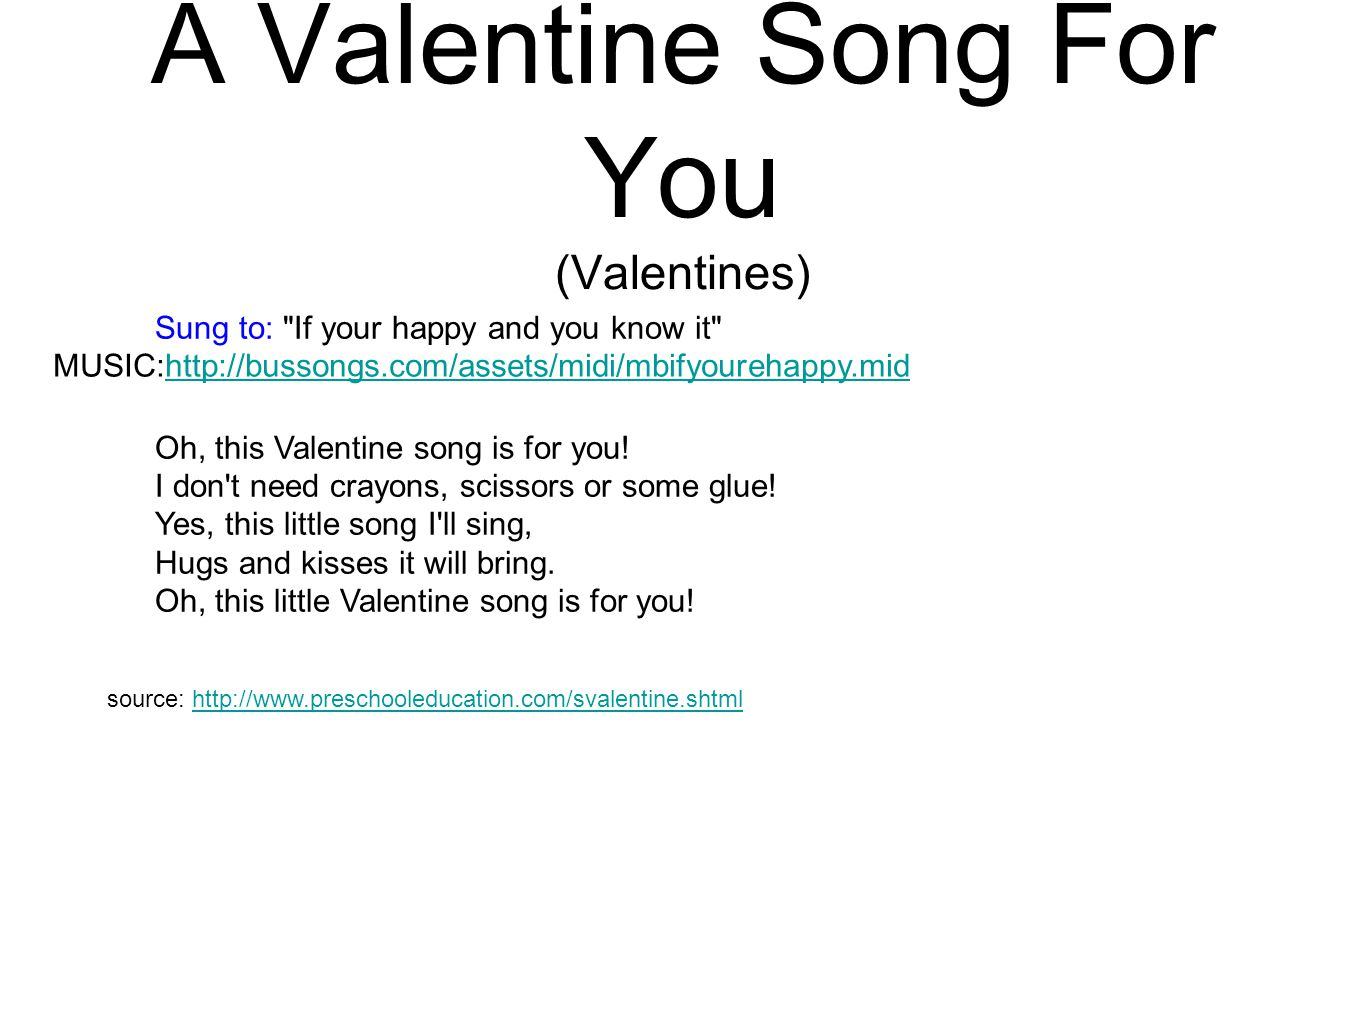 A Valentine Song For You (Valentines)